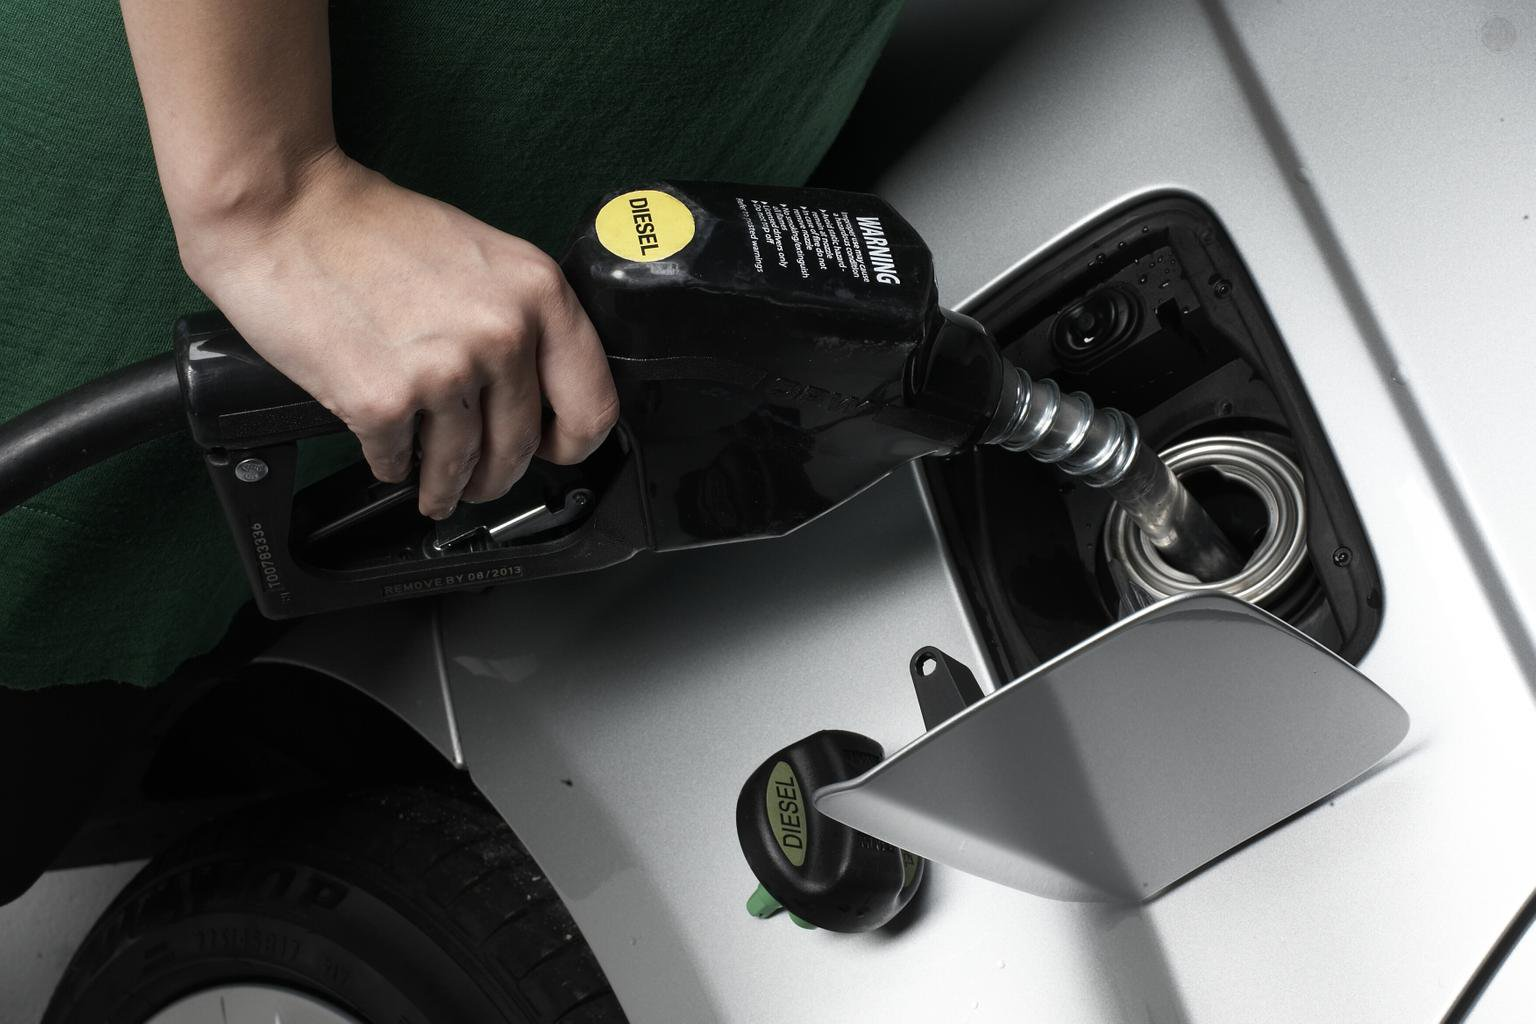 Fuel prices rise more than 6p per litre in two months